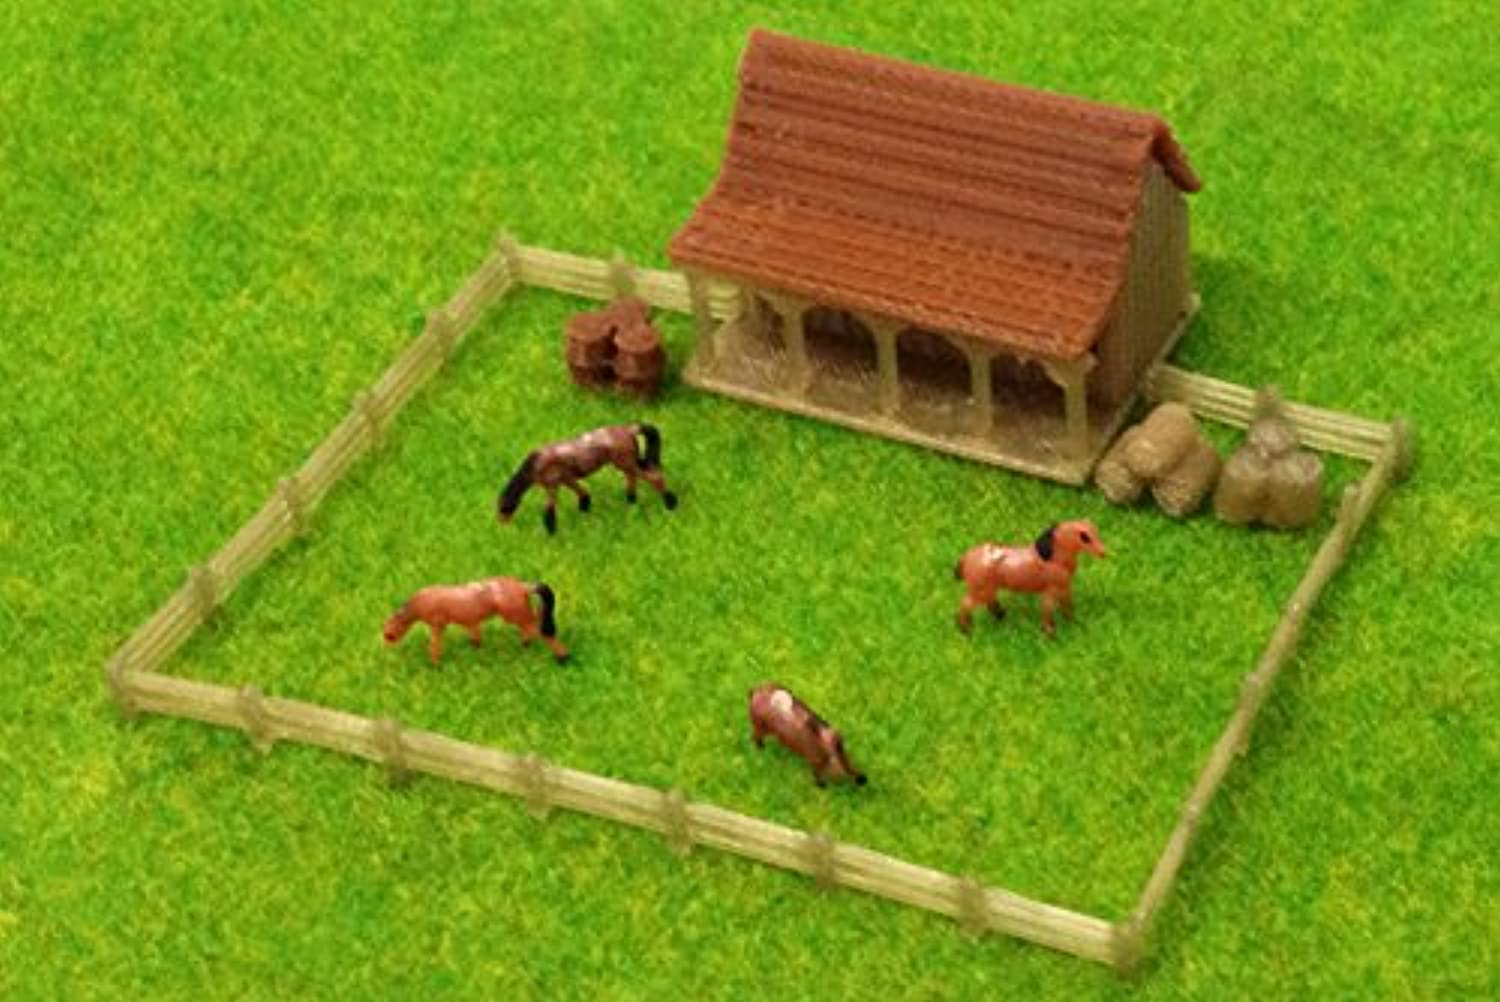 Outland Models Train Railway Layout Country Stable with Horses and Grass Z Scale